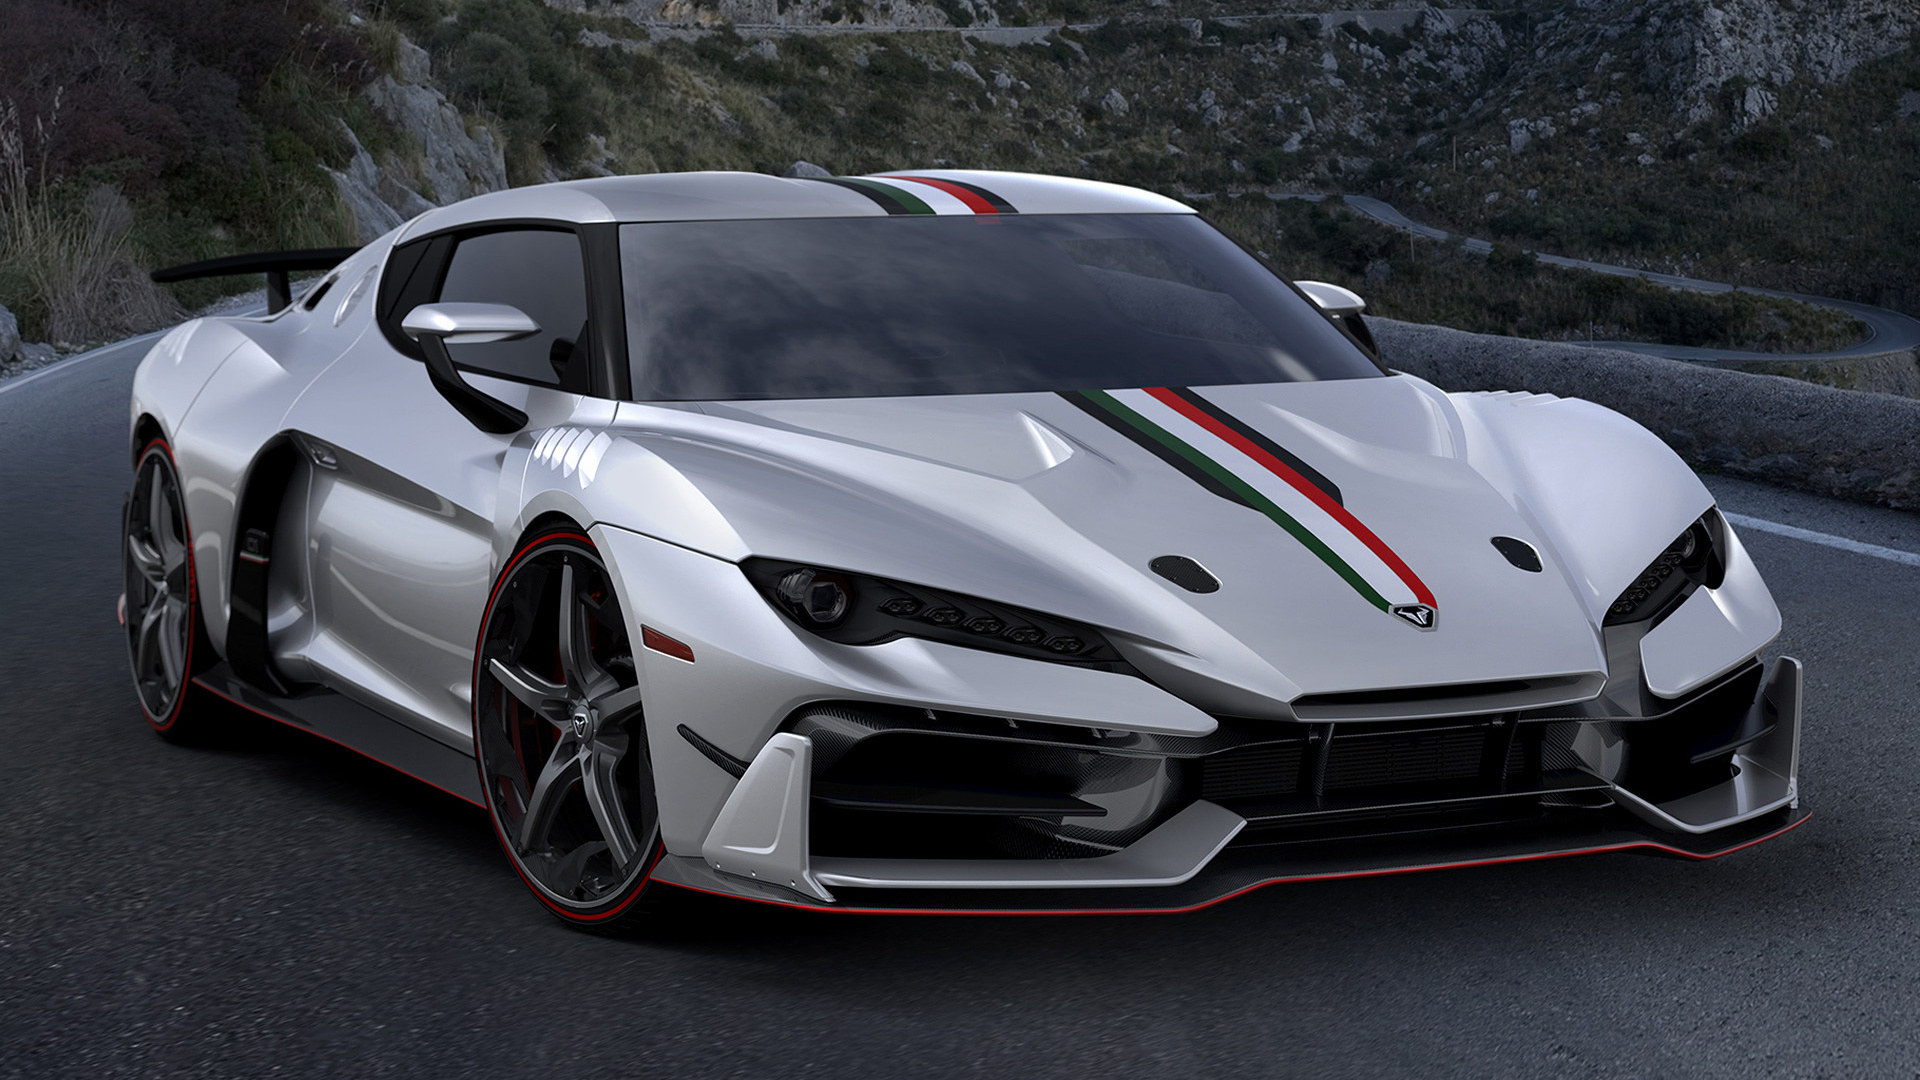 2017 Italdesign Zerouno - Wallpapers and HD Images | Car Pixel